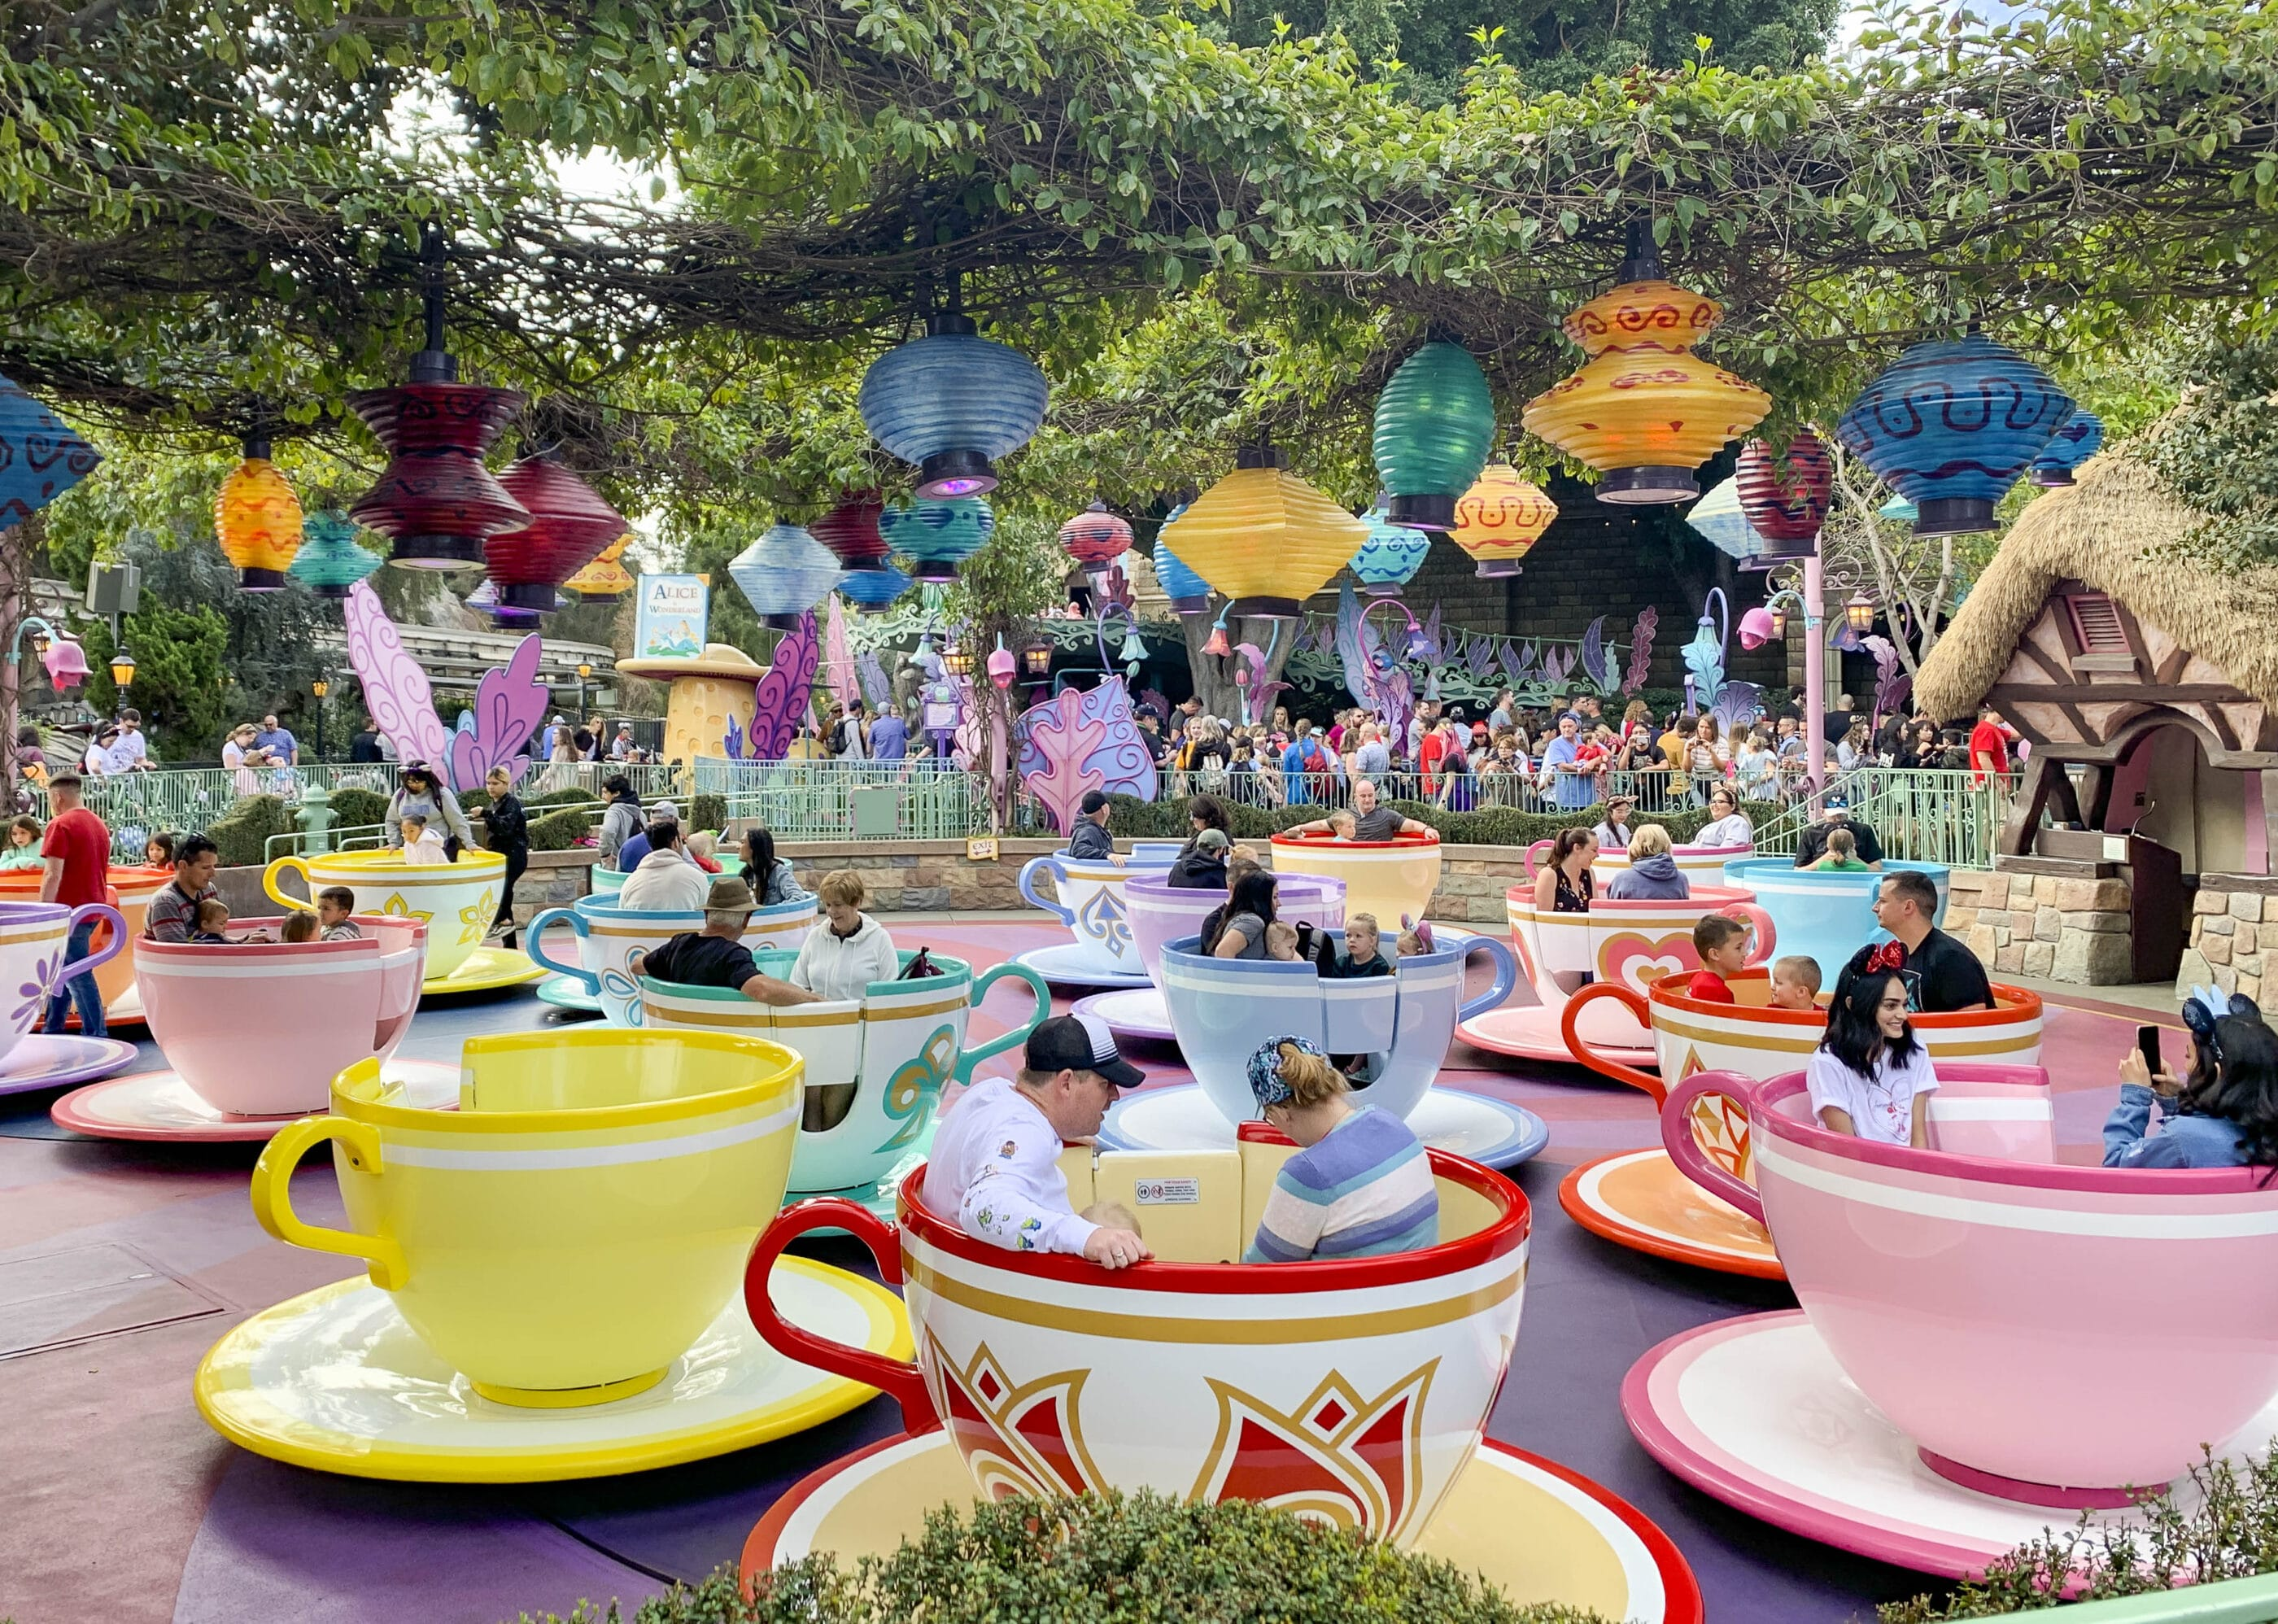 Guests spin in the teacups on the Mad Tea Party ride at Disneyland